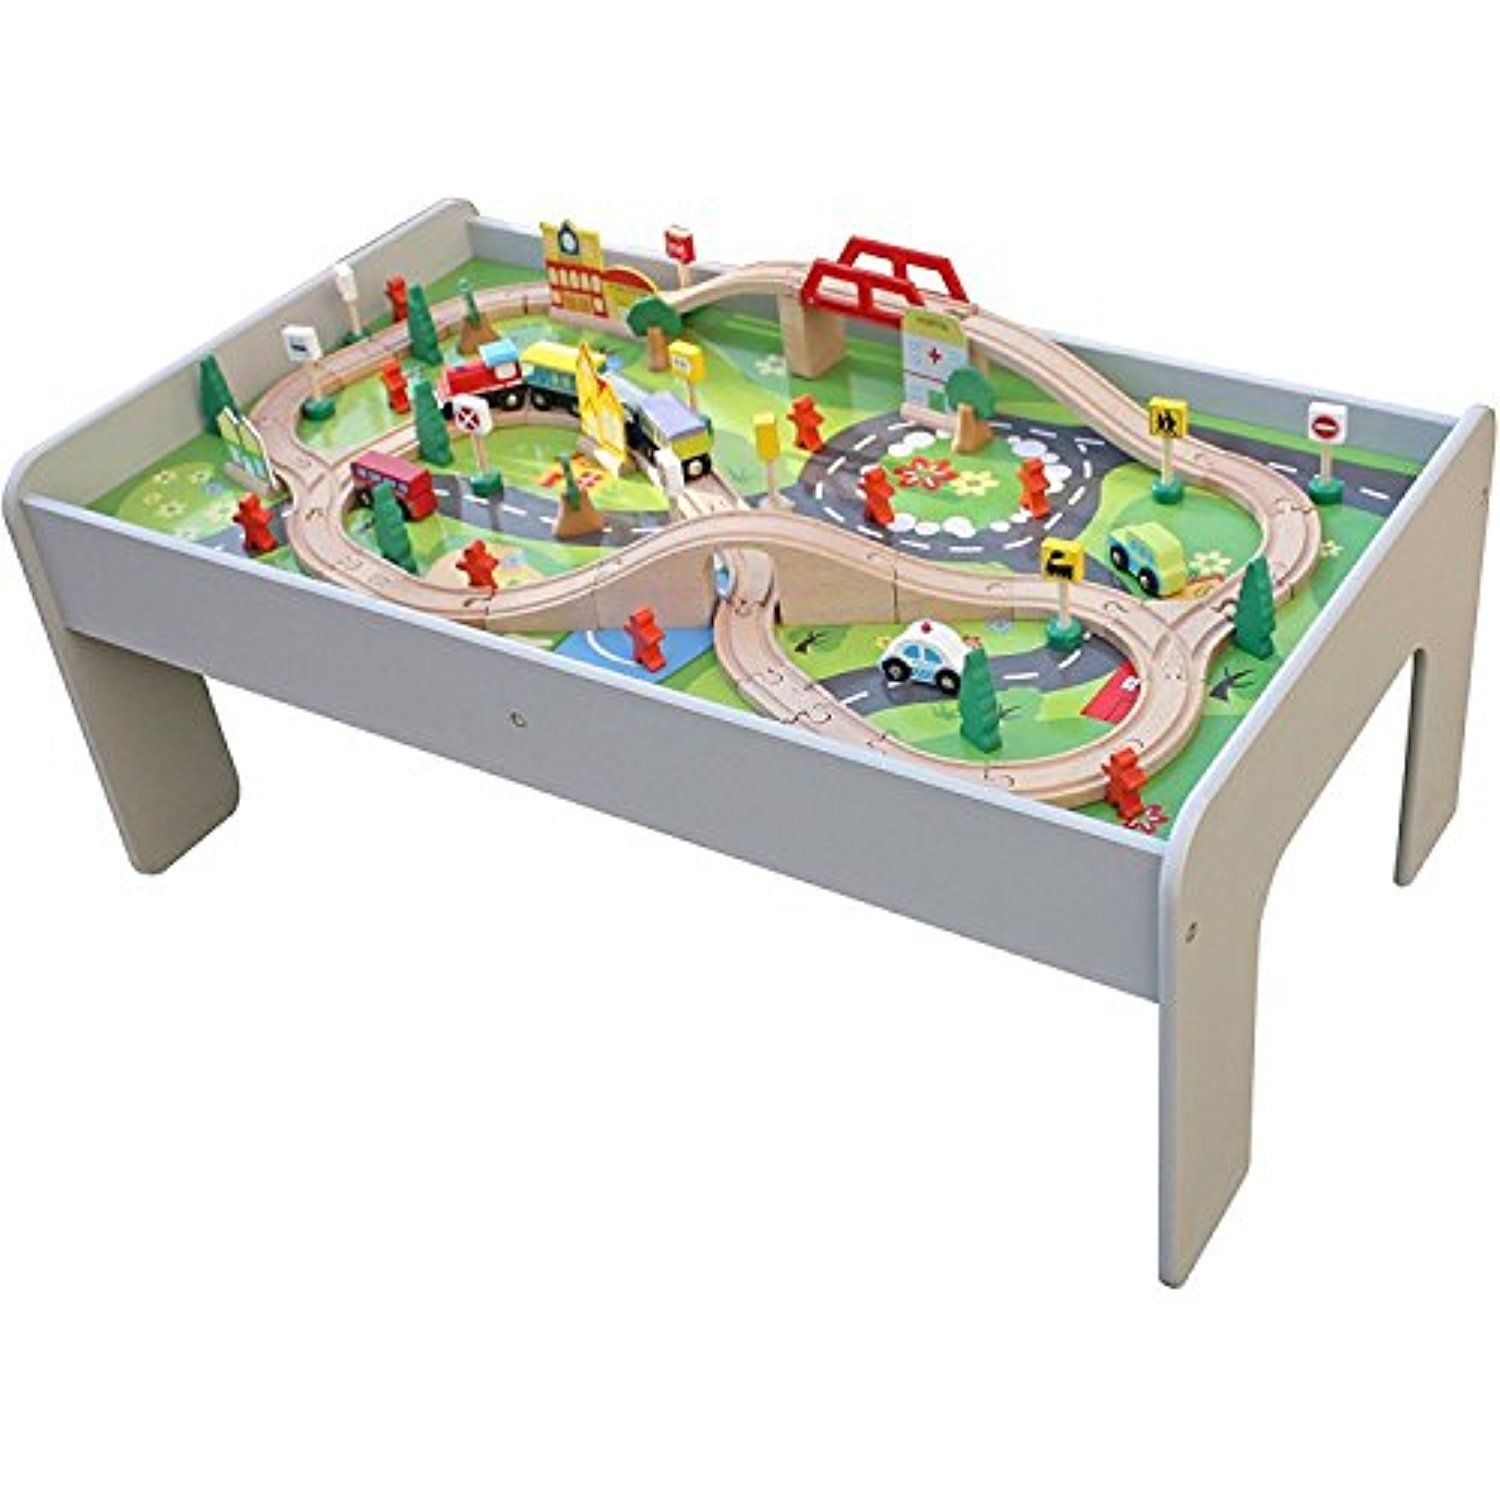 Pidoko Kids Train Table, Grey with 90 Pcs Train Set and Accessories ...